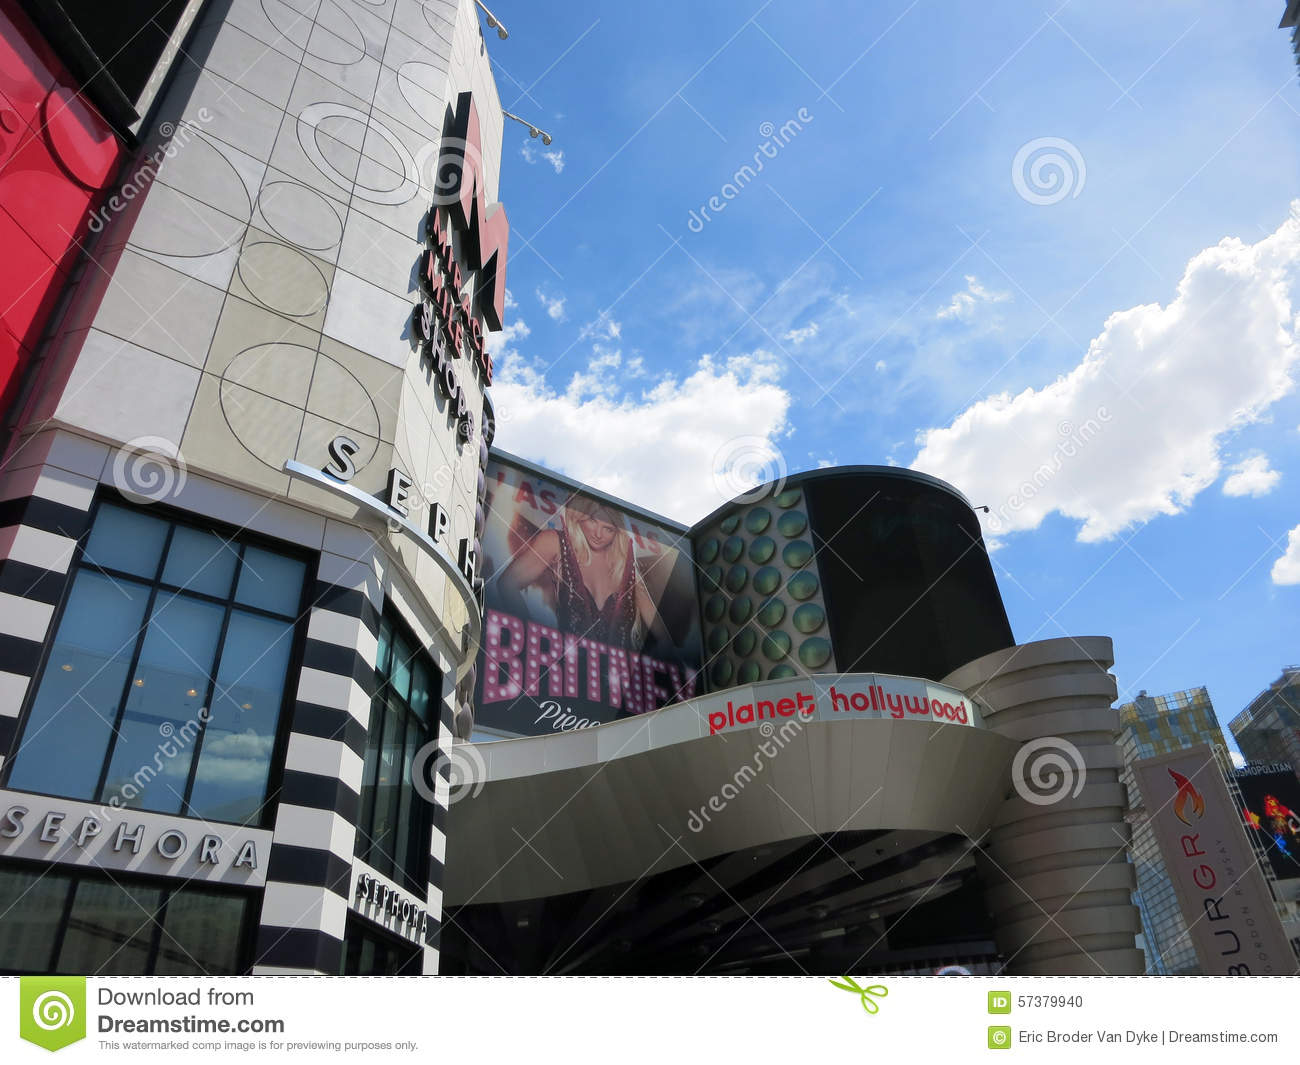 Planet hollywood hotel miracle mile with britney spears ad and c planet hollywood hotel miracle mile with britney spears ad and c kristyandbryce Choice Image